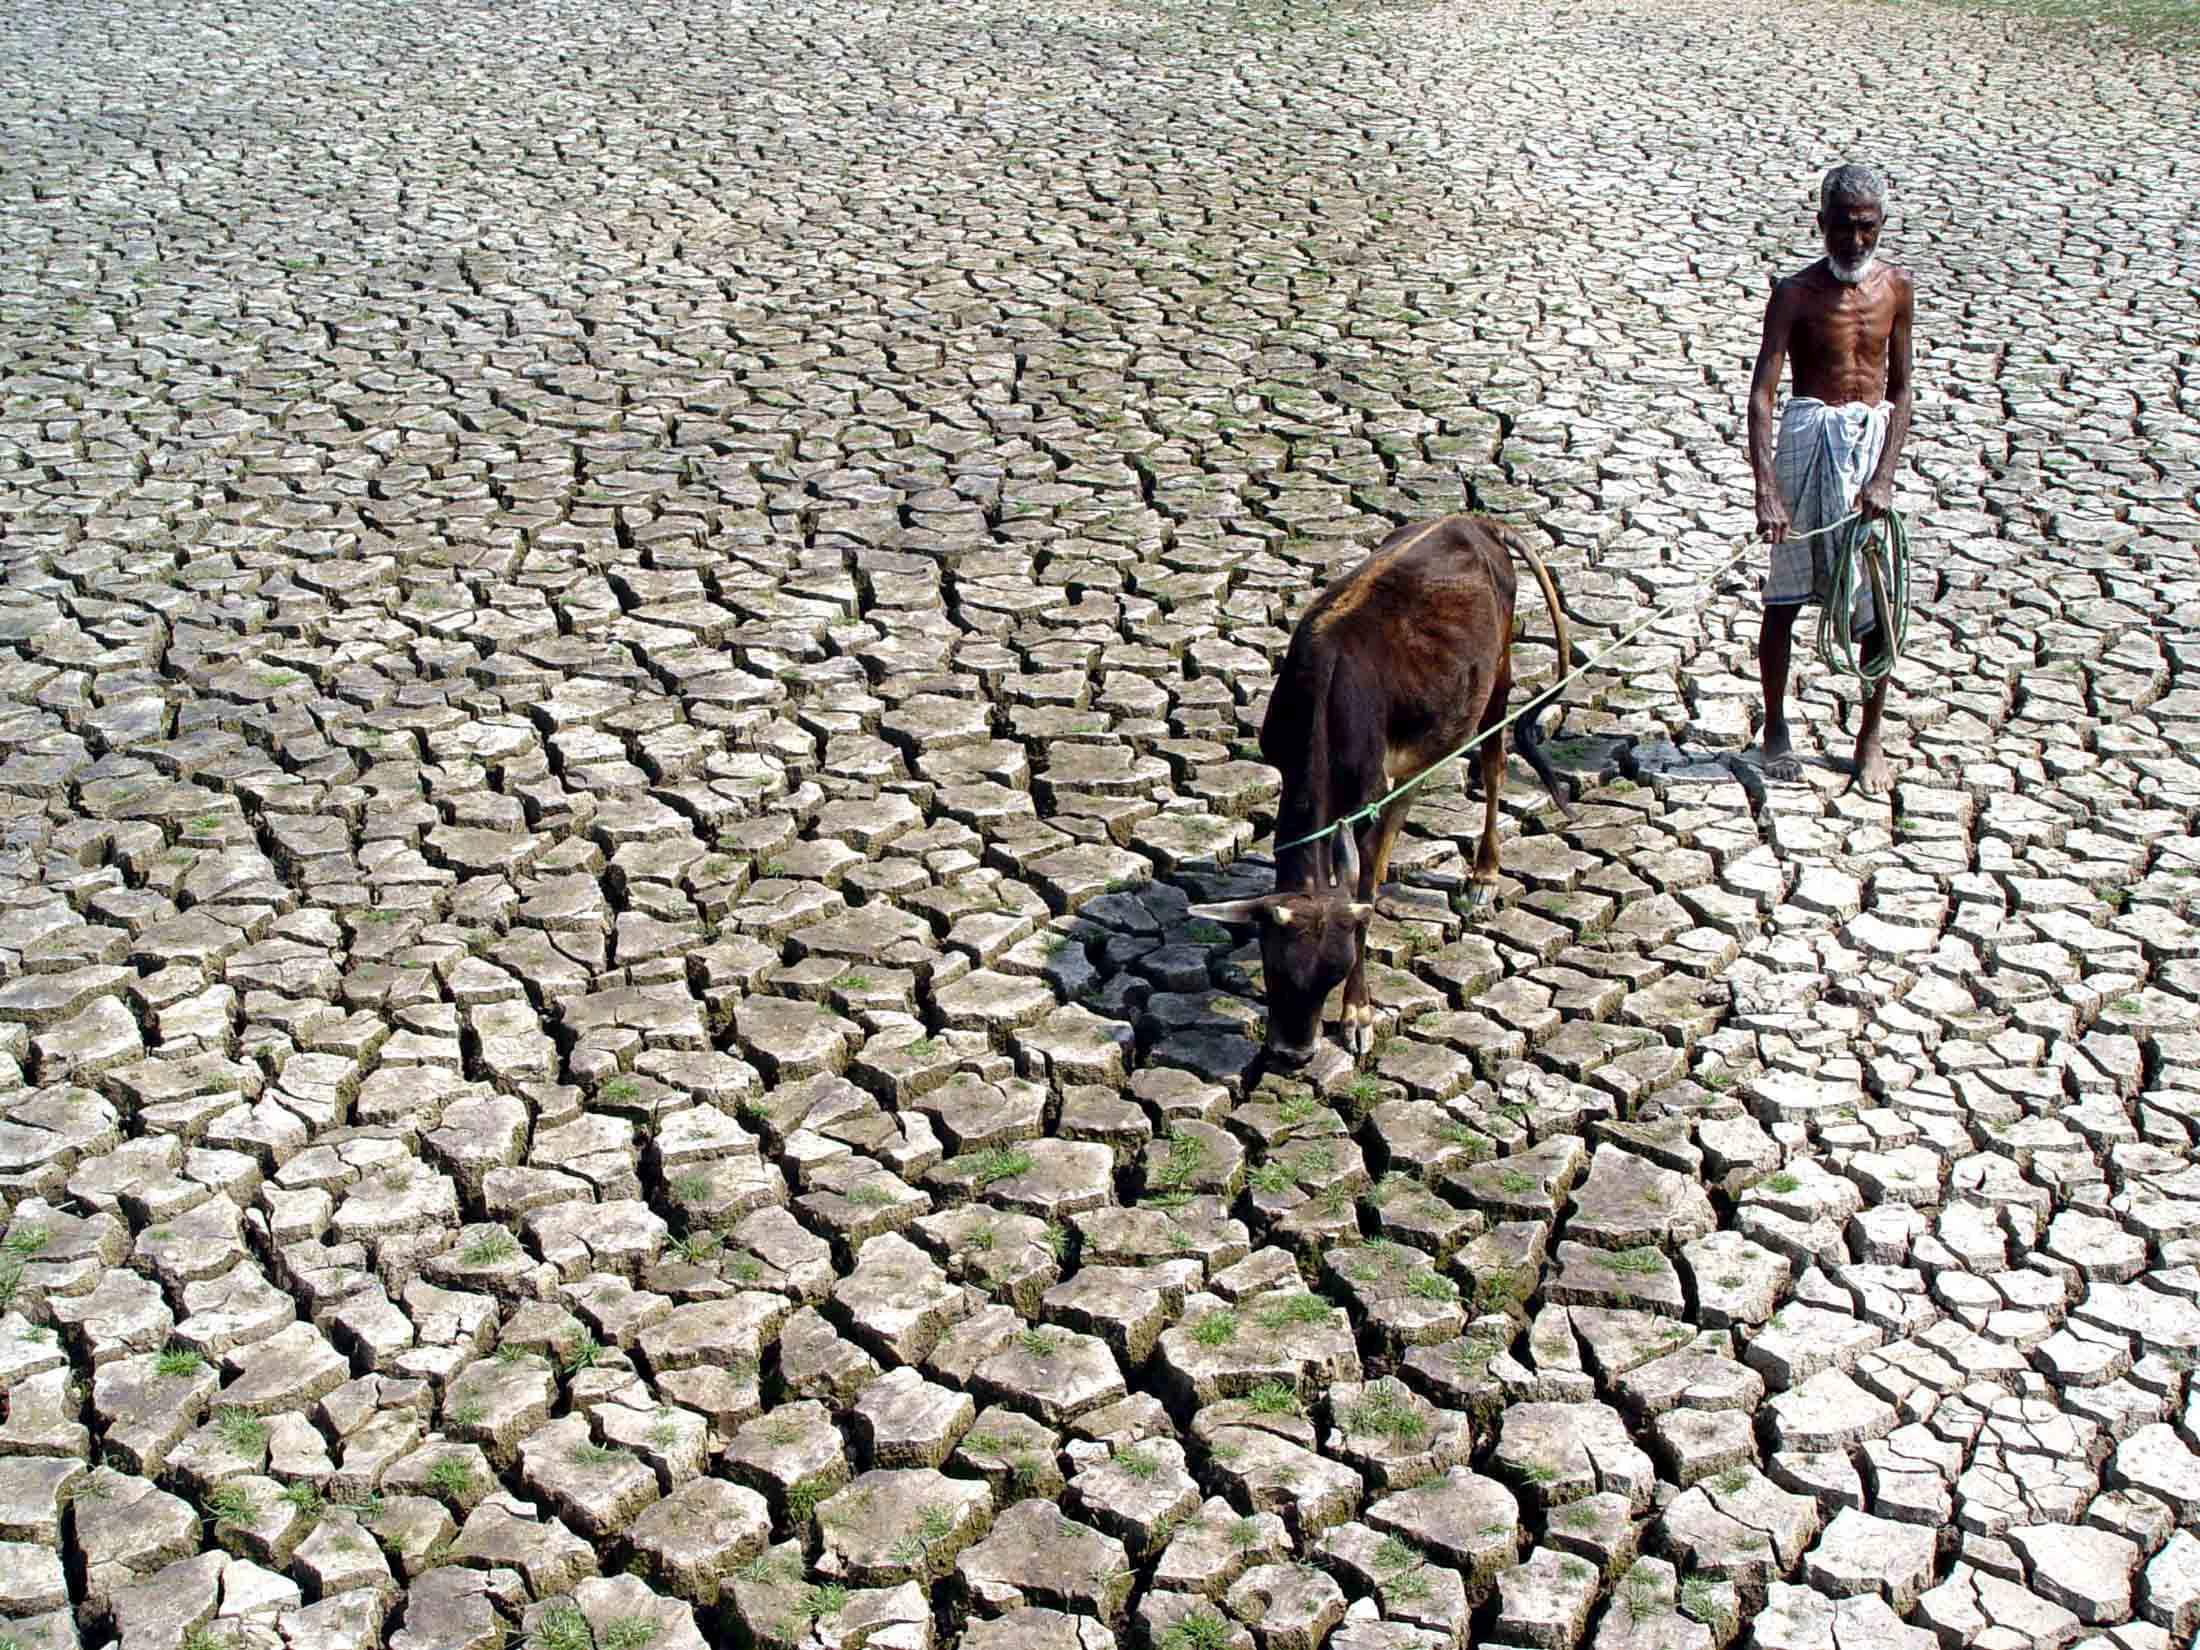 Climate change poses a risk to food security in India. (Image: Reuters)